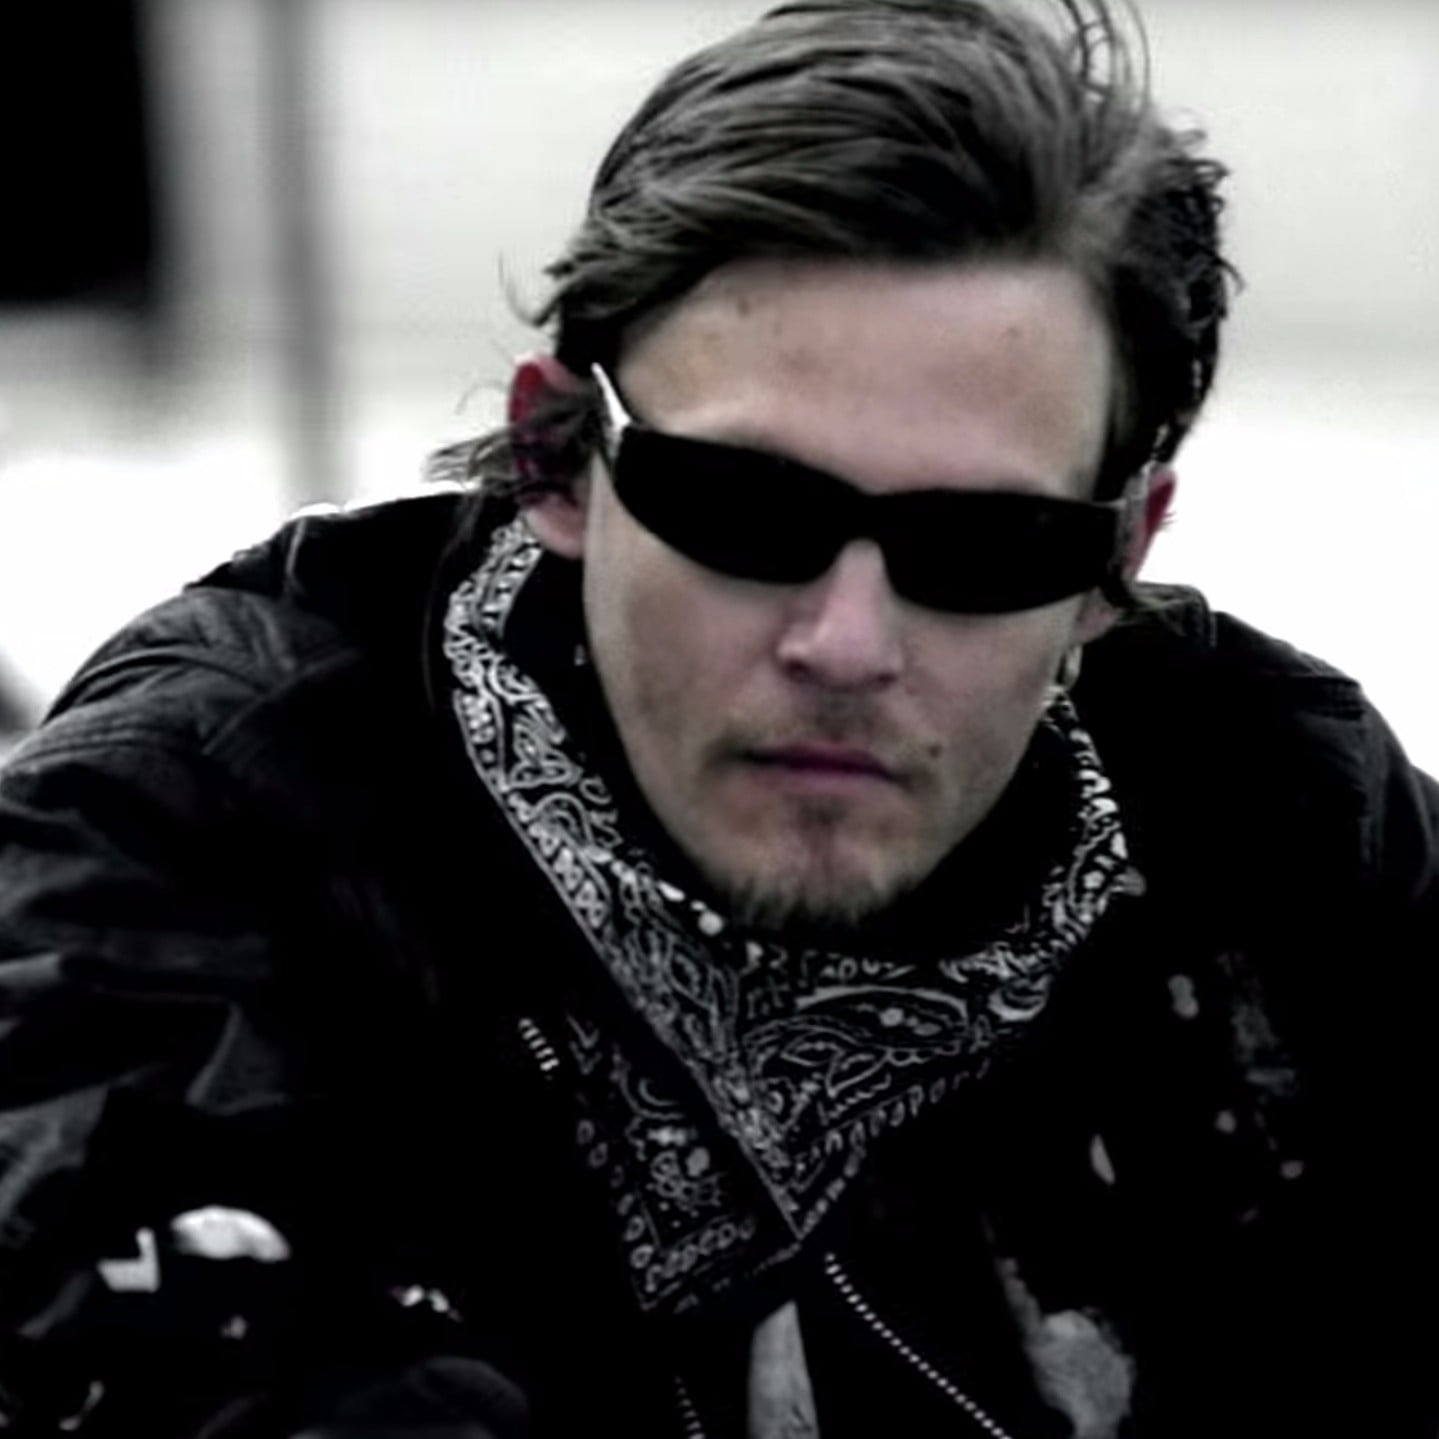 Norman Reedus in Lady Gaga's